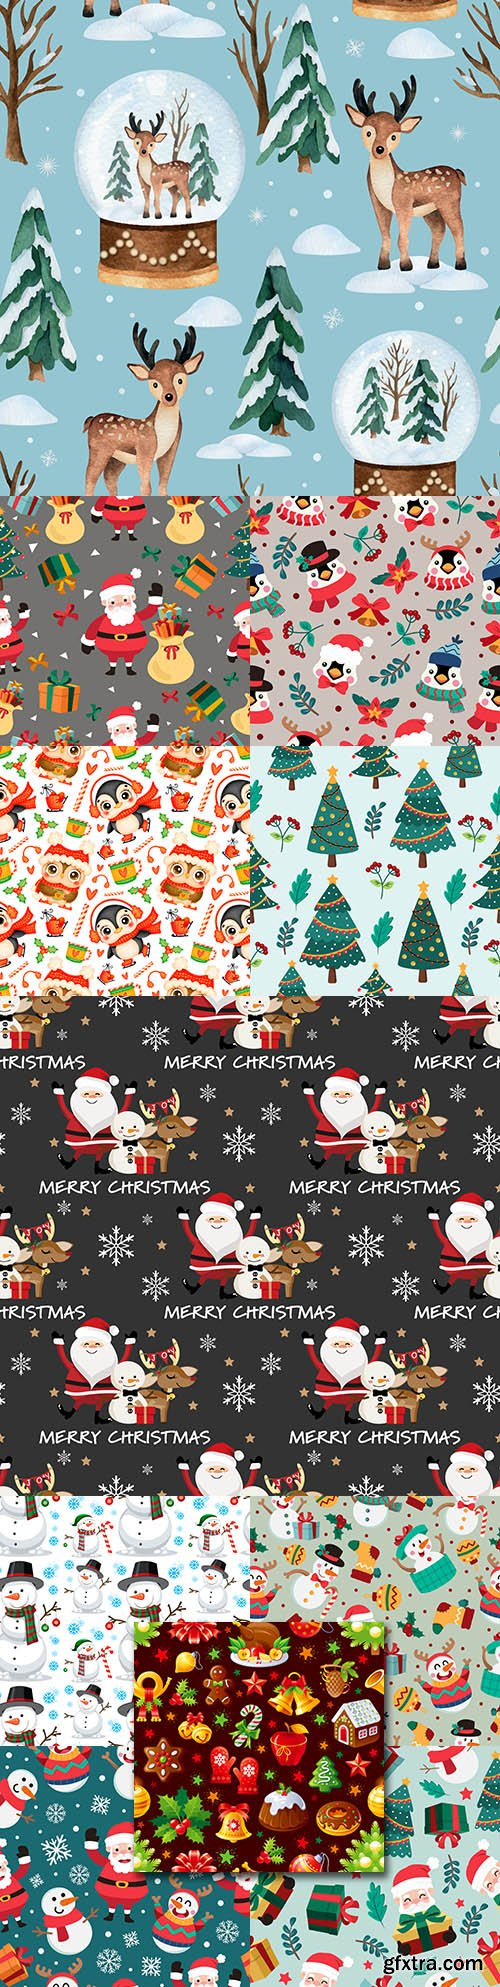 Christmas cartoon seamless patterns with Santa Claus and snowman